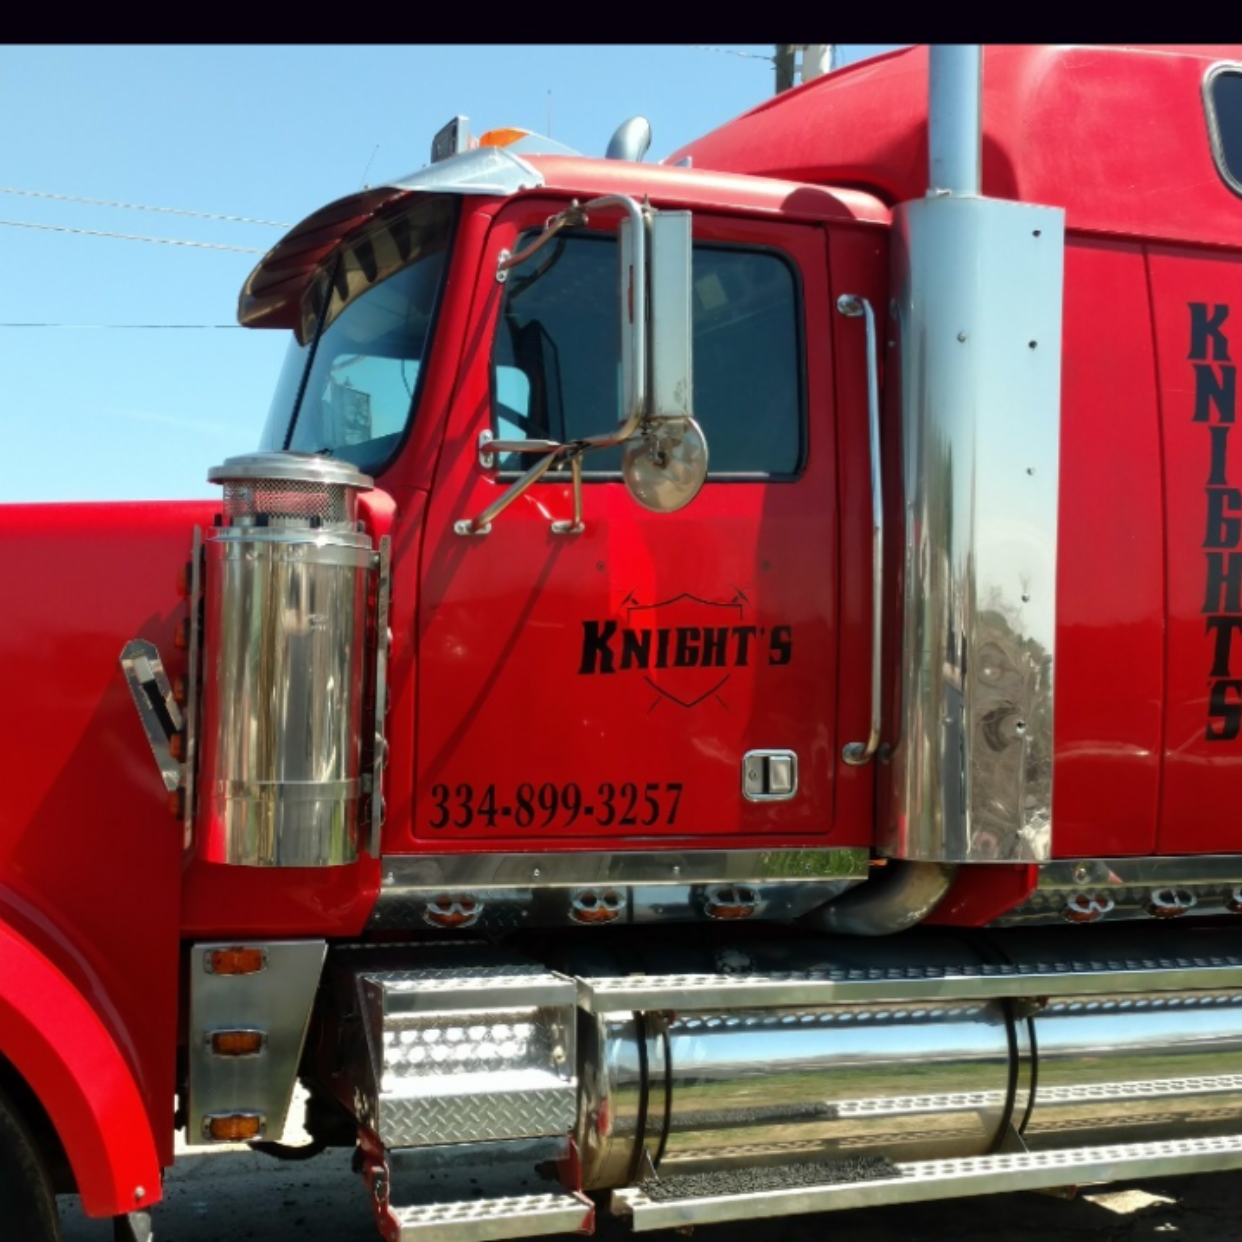 Knight's Automotive Repair & Wrecker Service Inc.